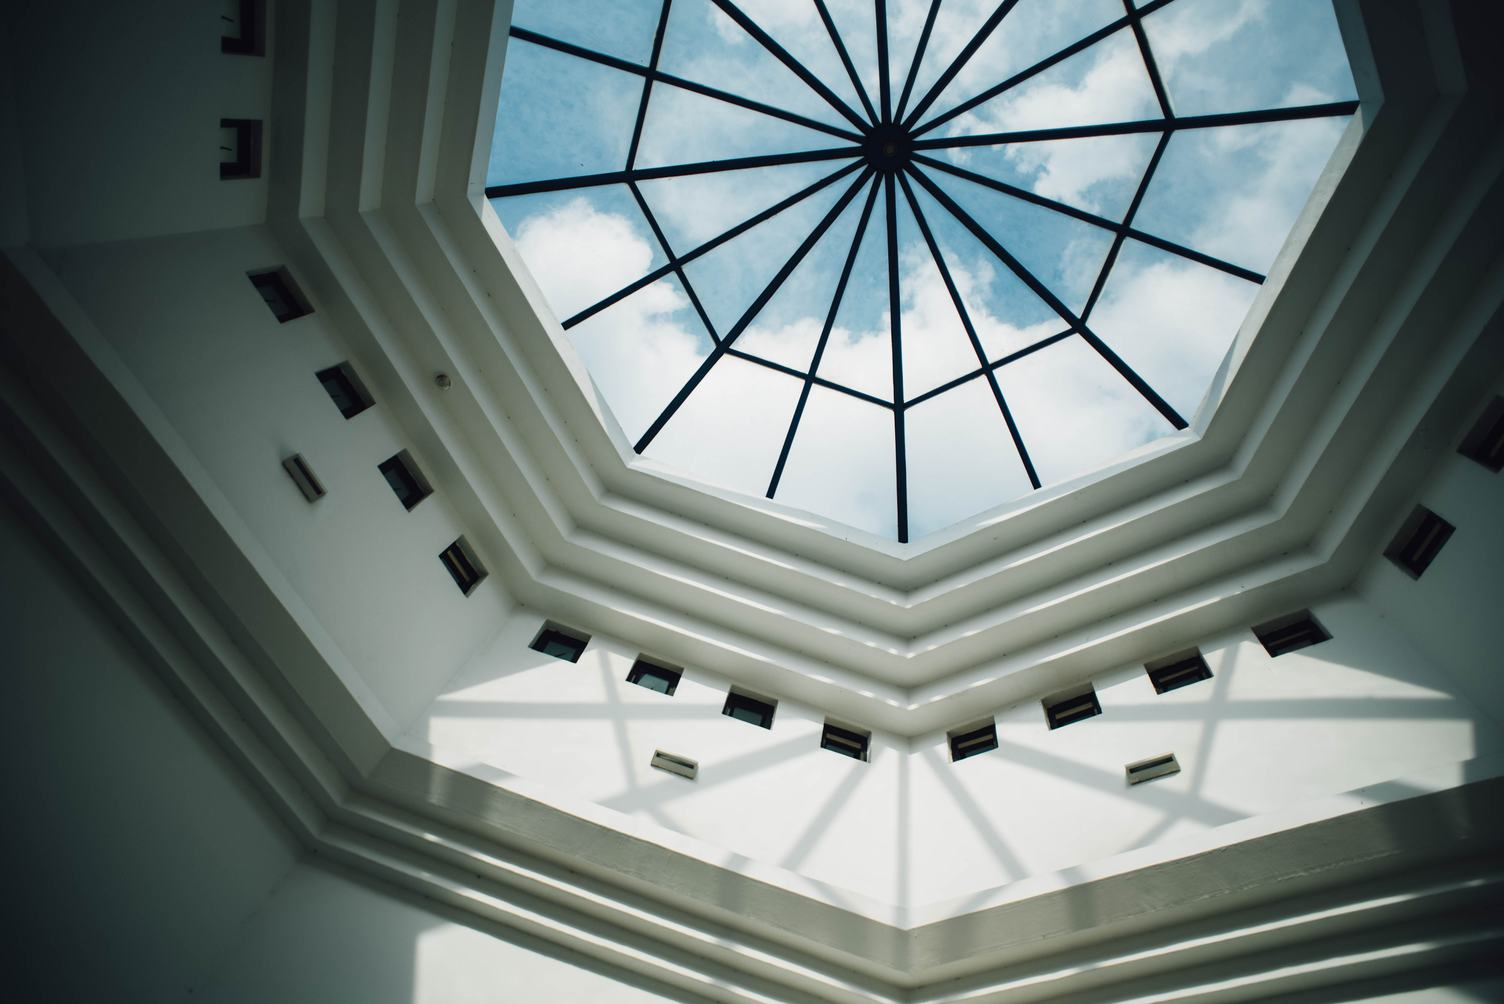 Dome with Skylight Building Interior